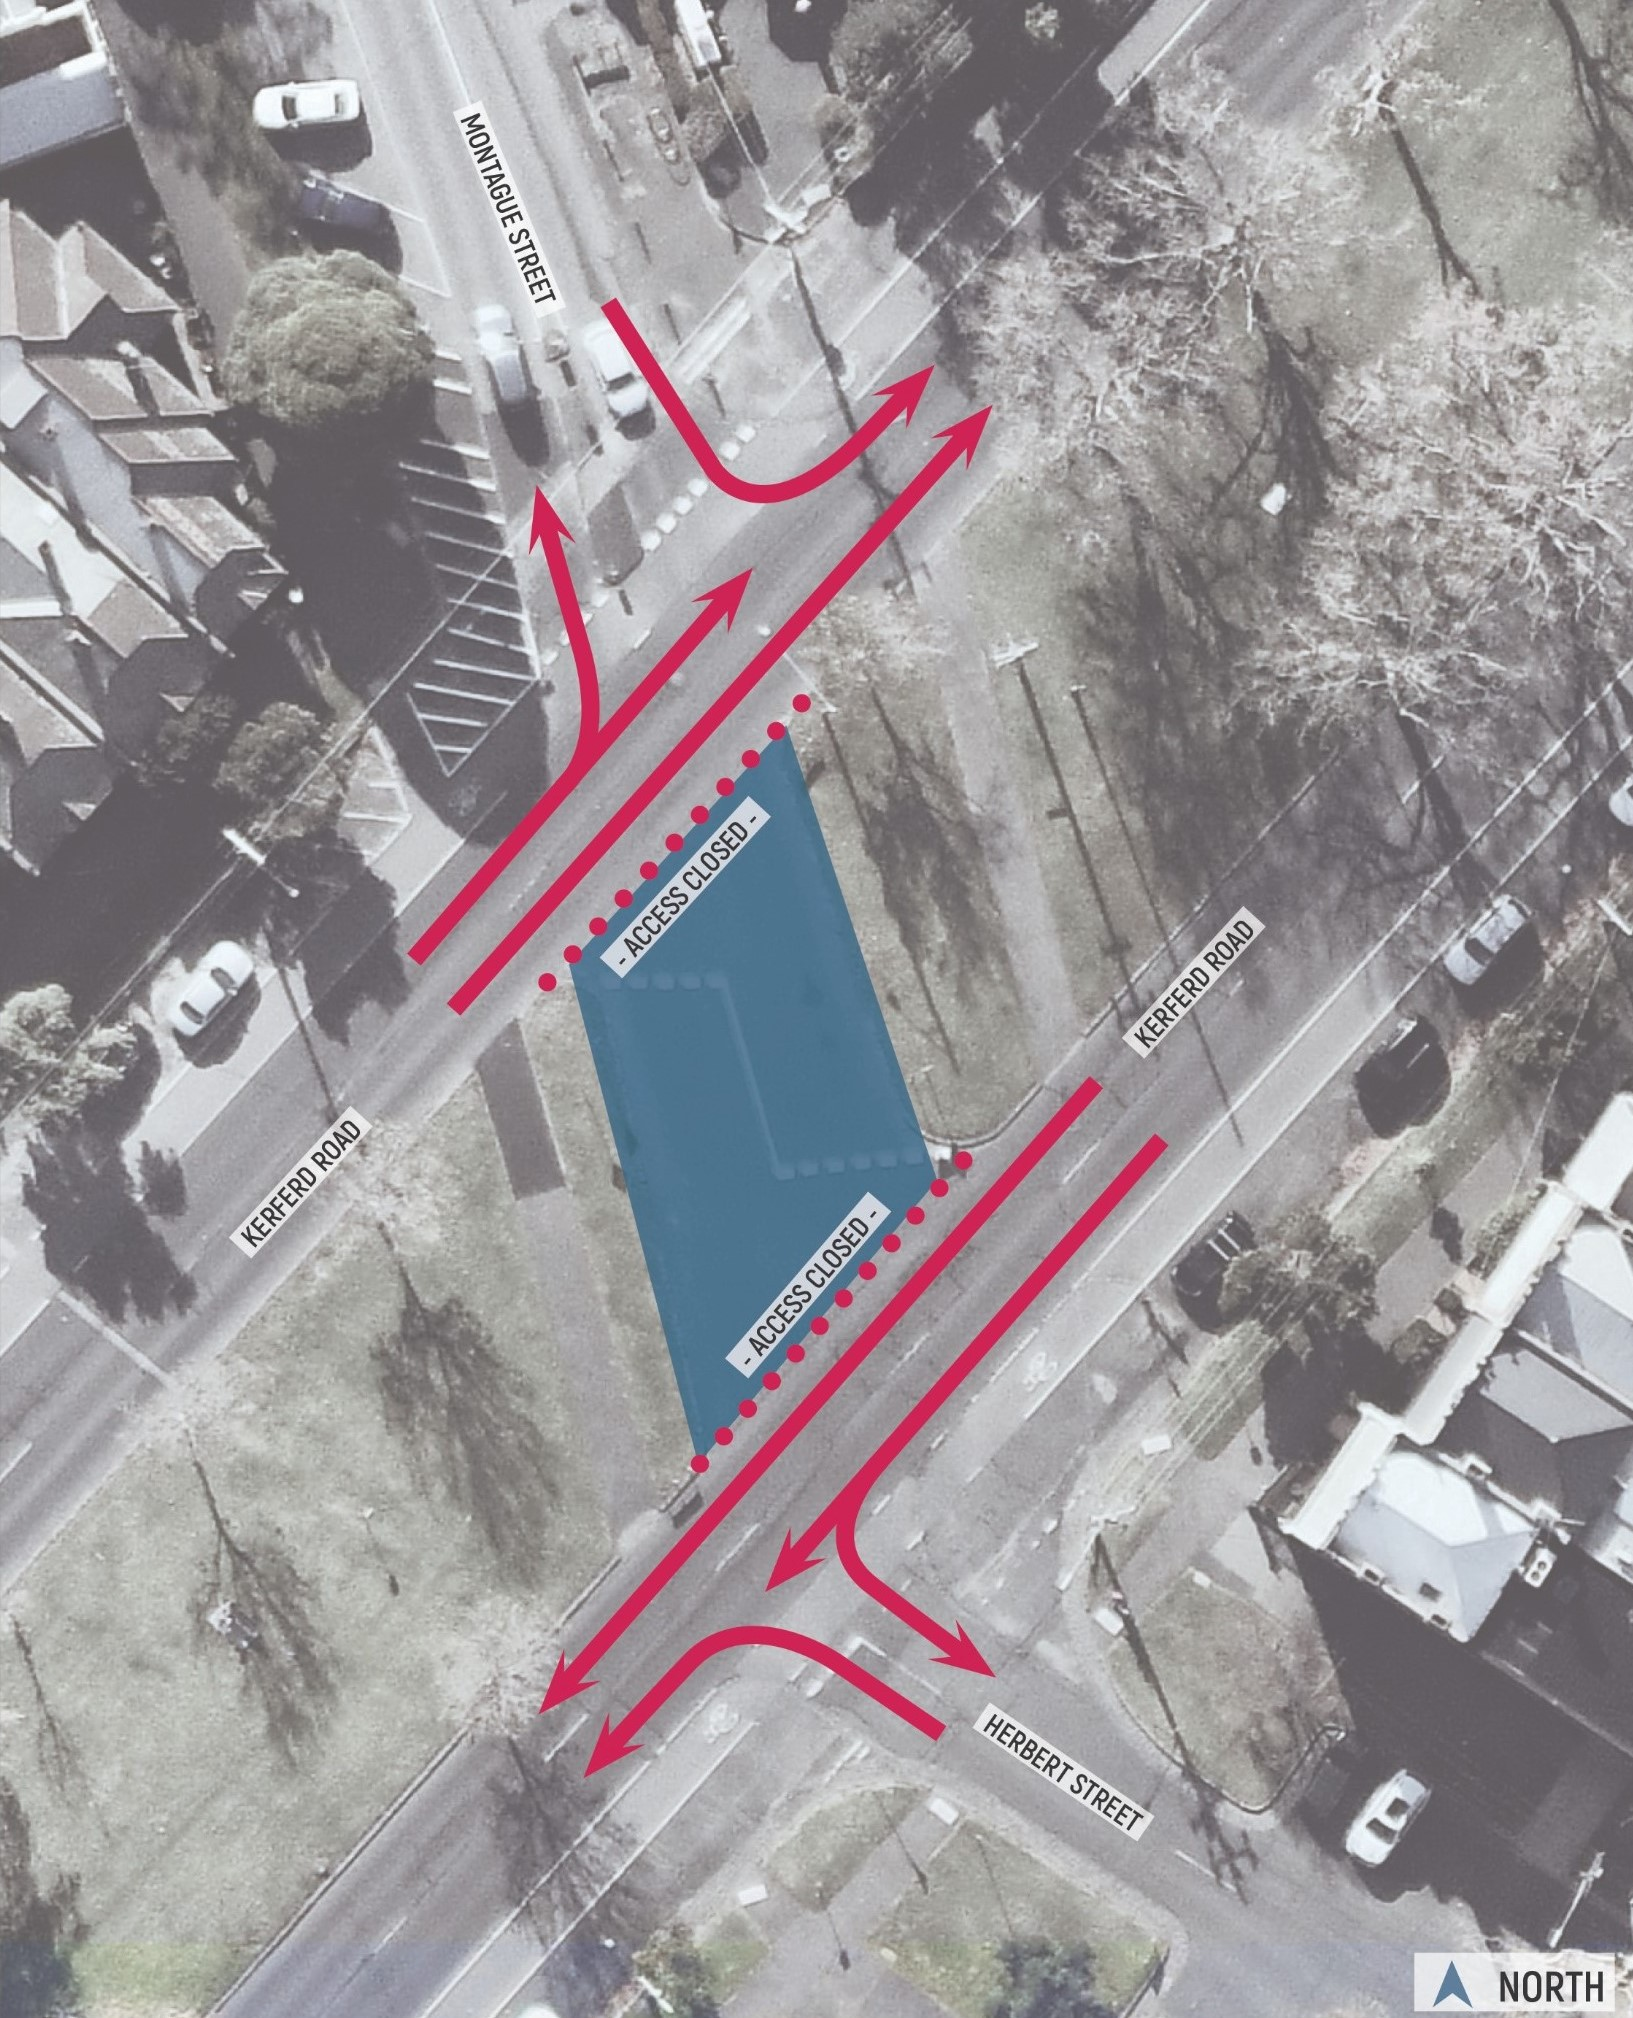 Aerial map showing permitted traffic movements at Kerferd Road